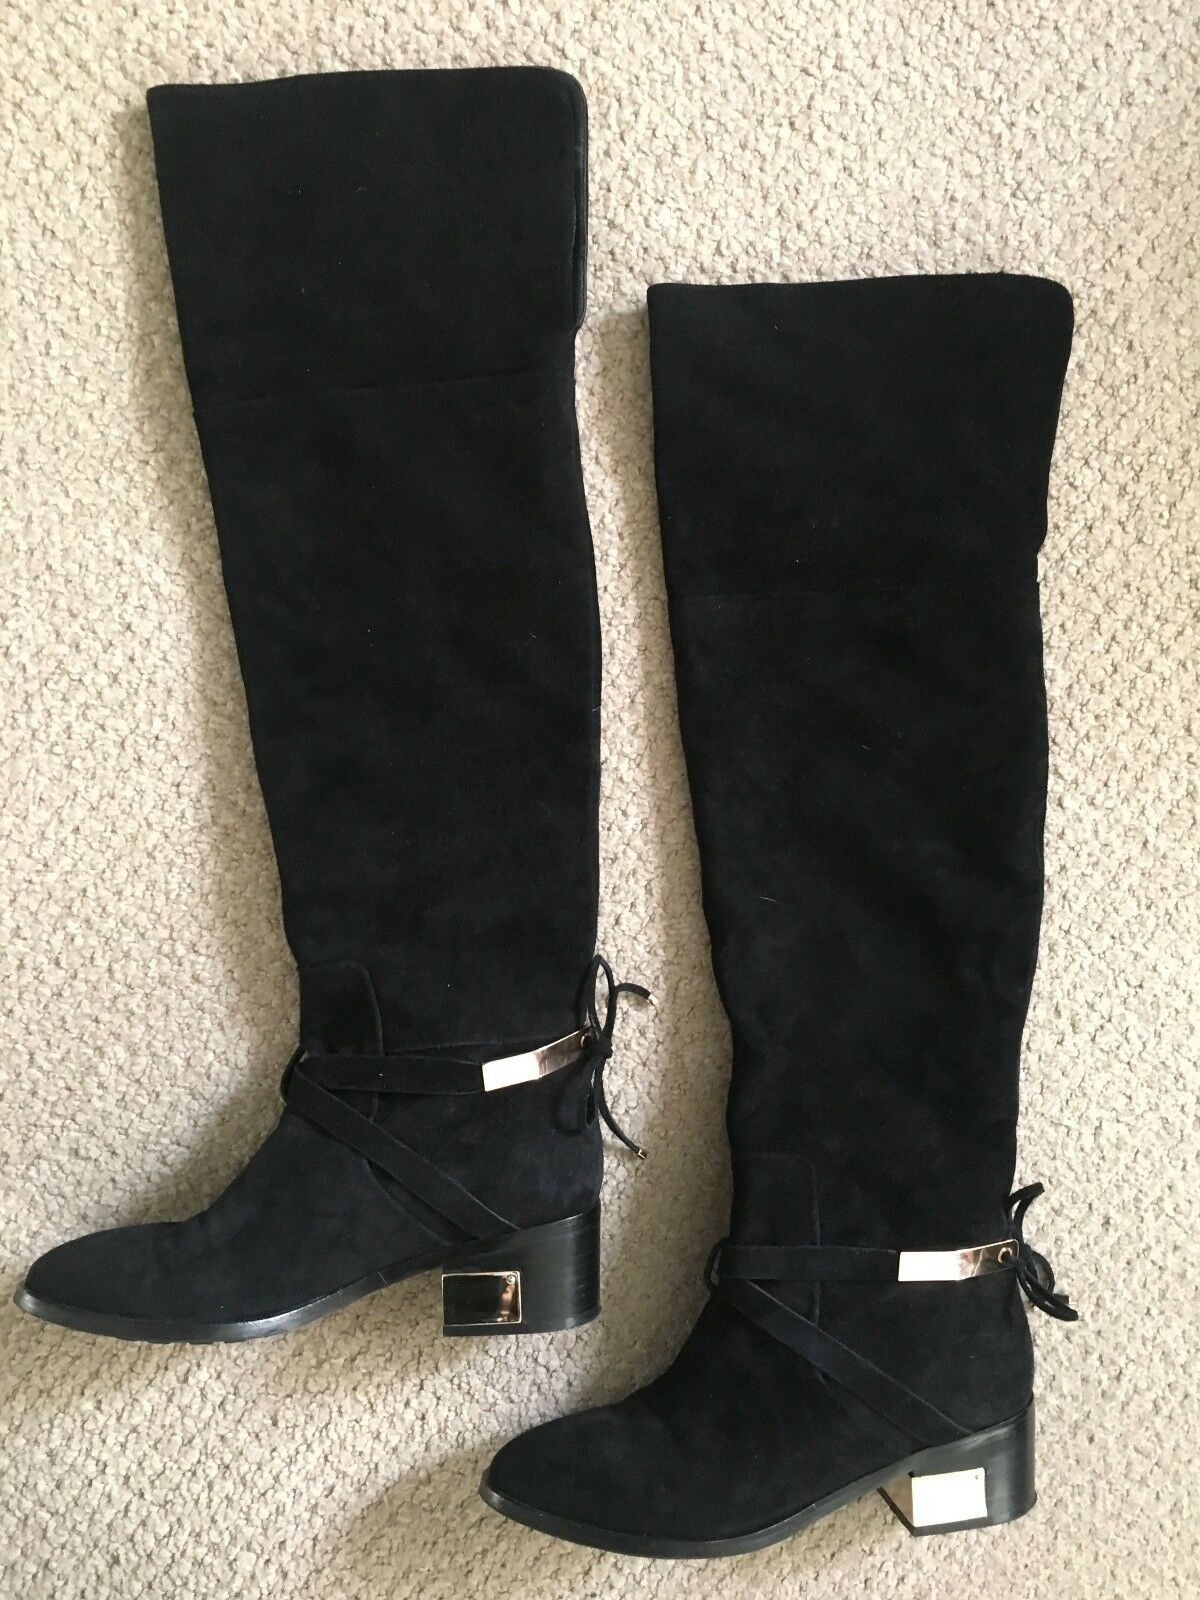 Christian Dior Black Suede Over the Knee High Boots Size 37 EU